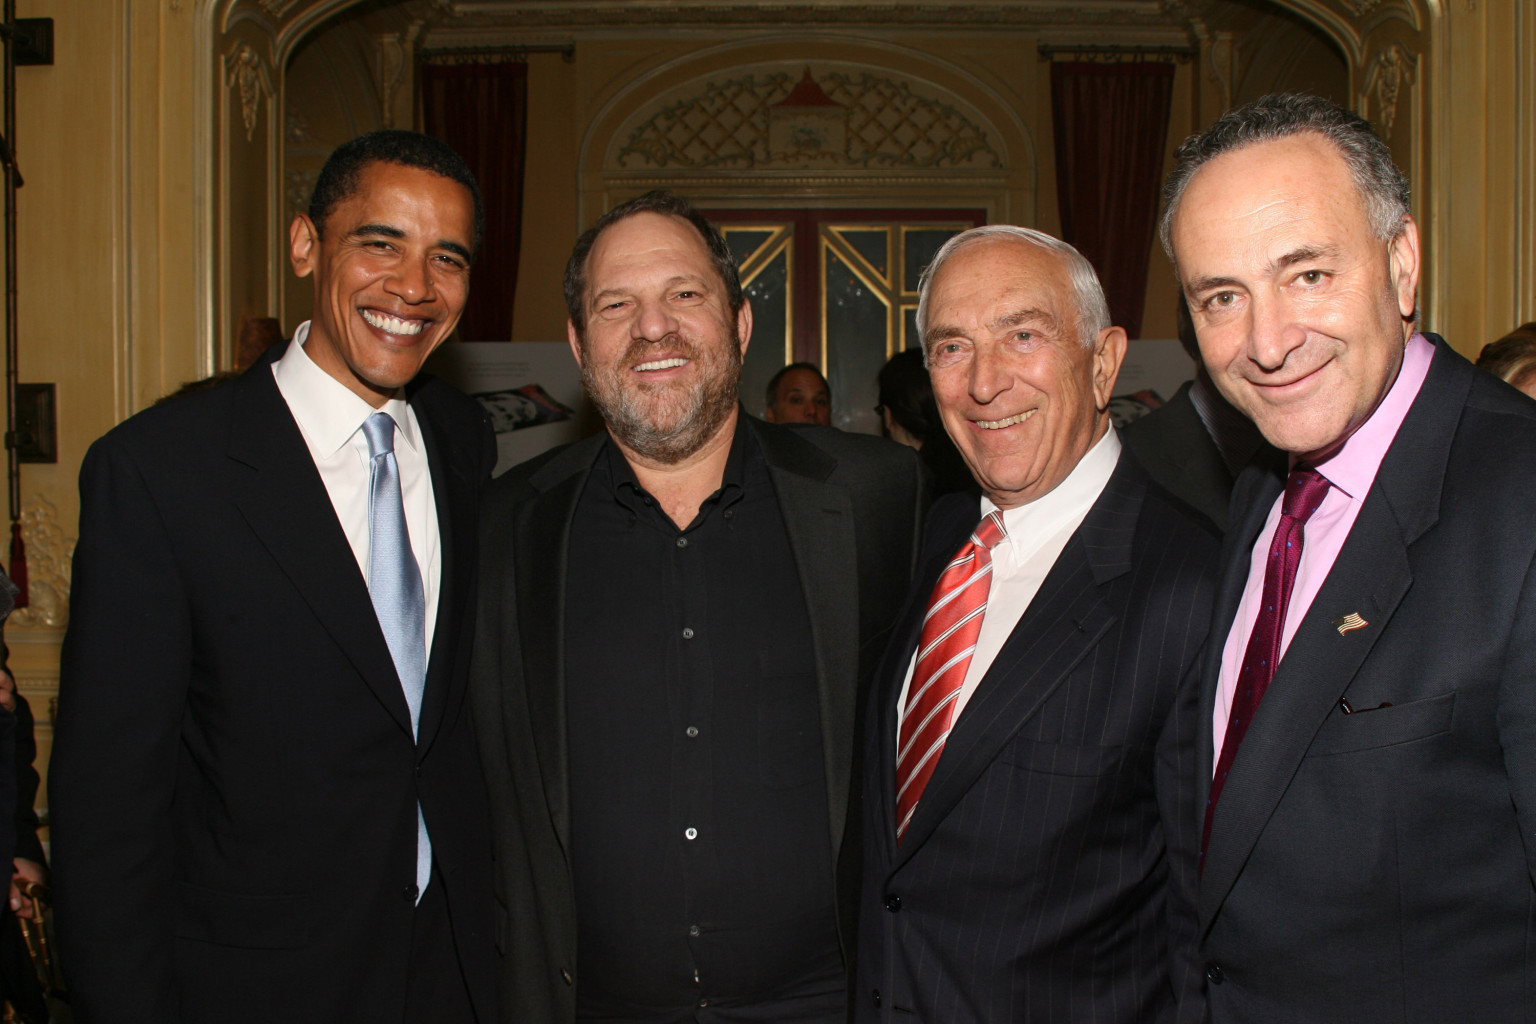 o-HARVEY-WEINSTEIN-OBAMA-facebook.jpg